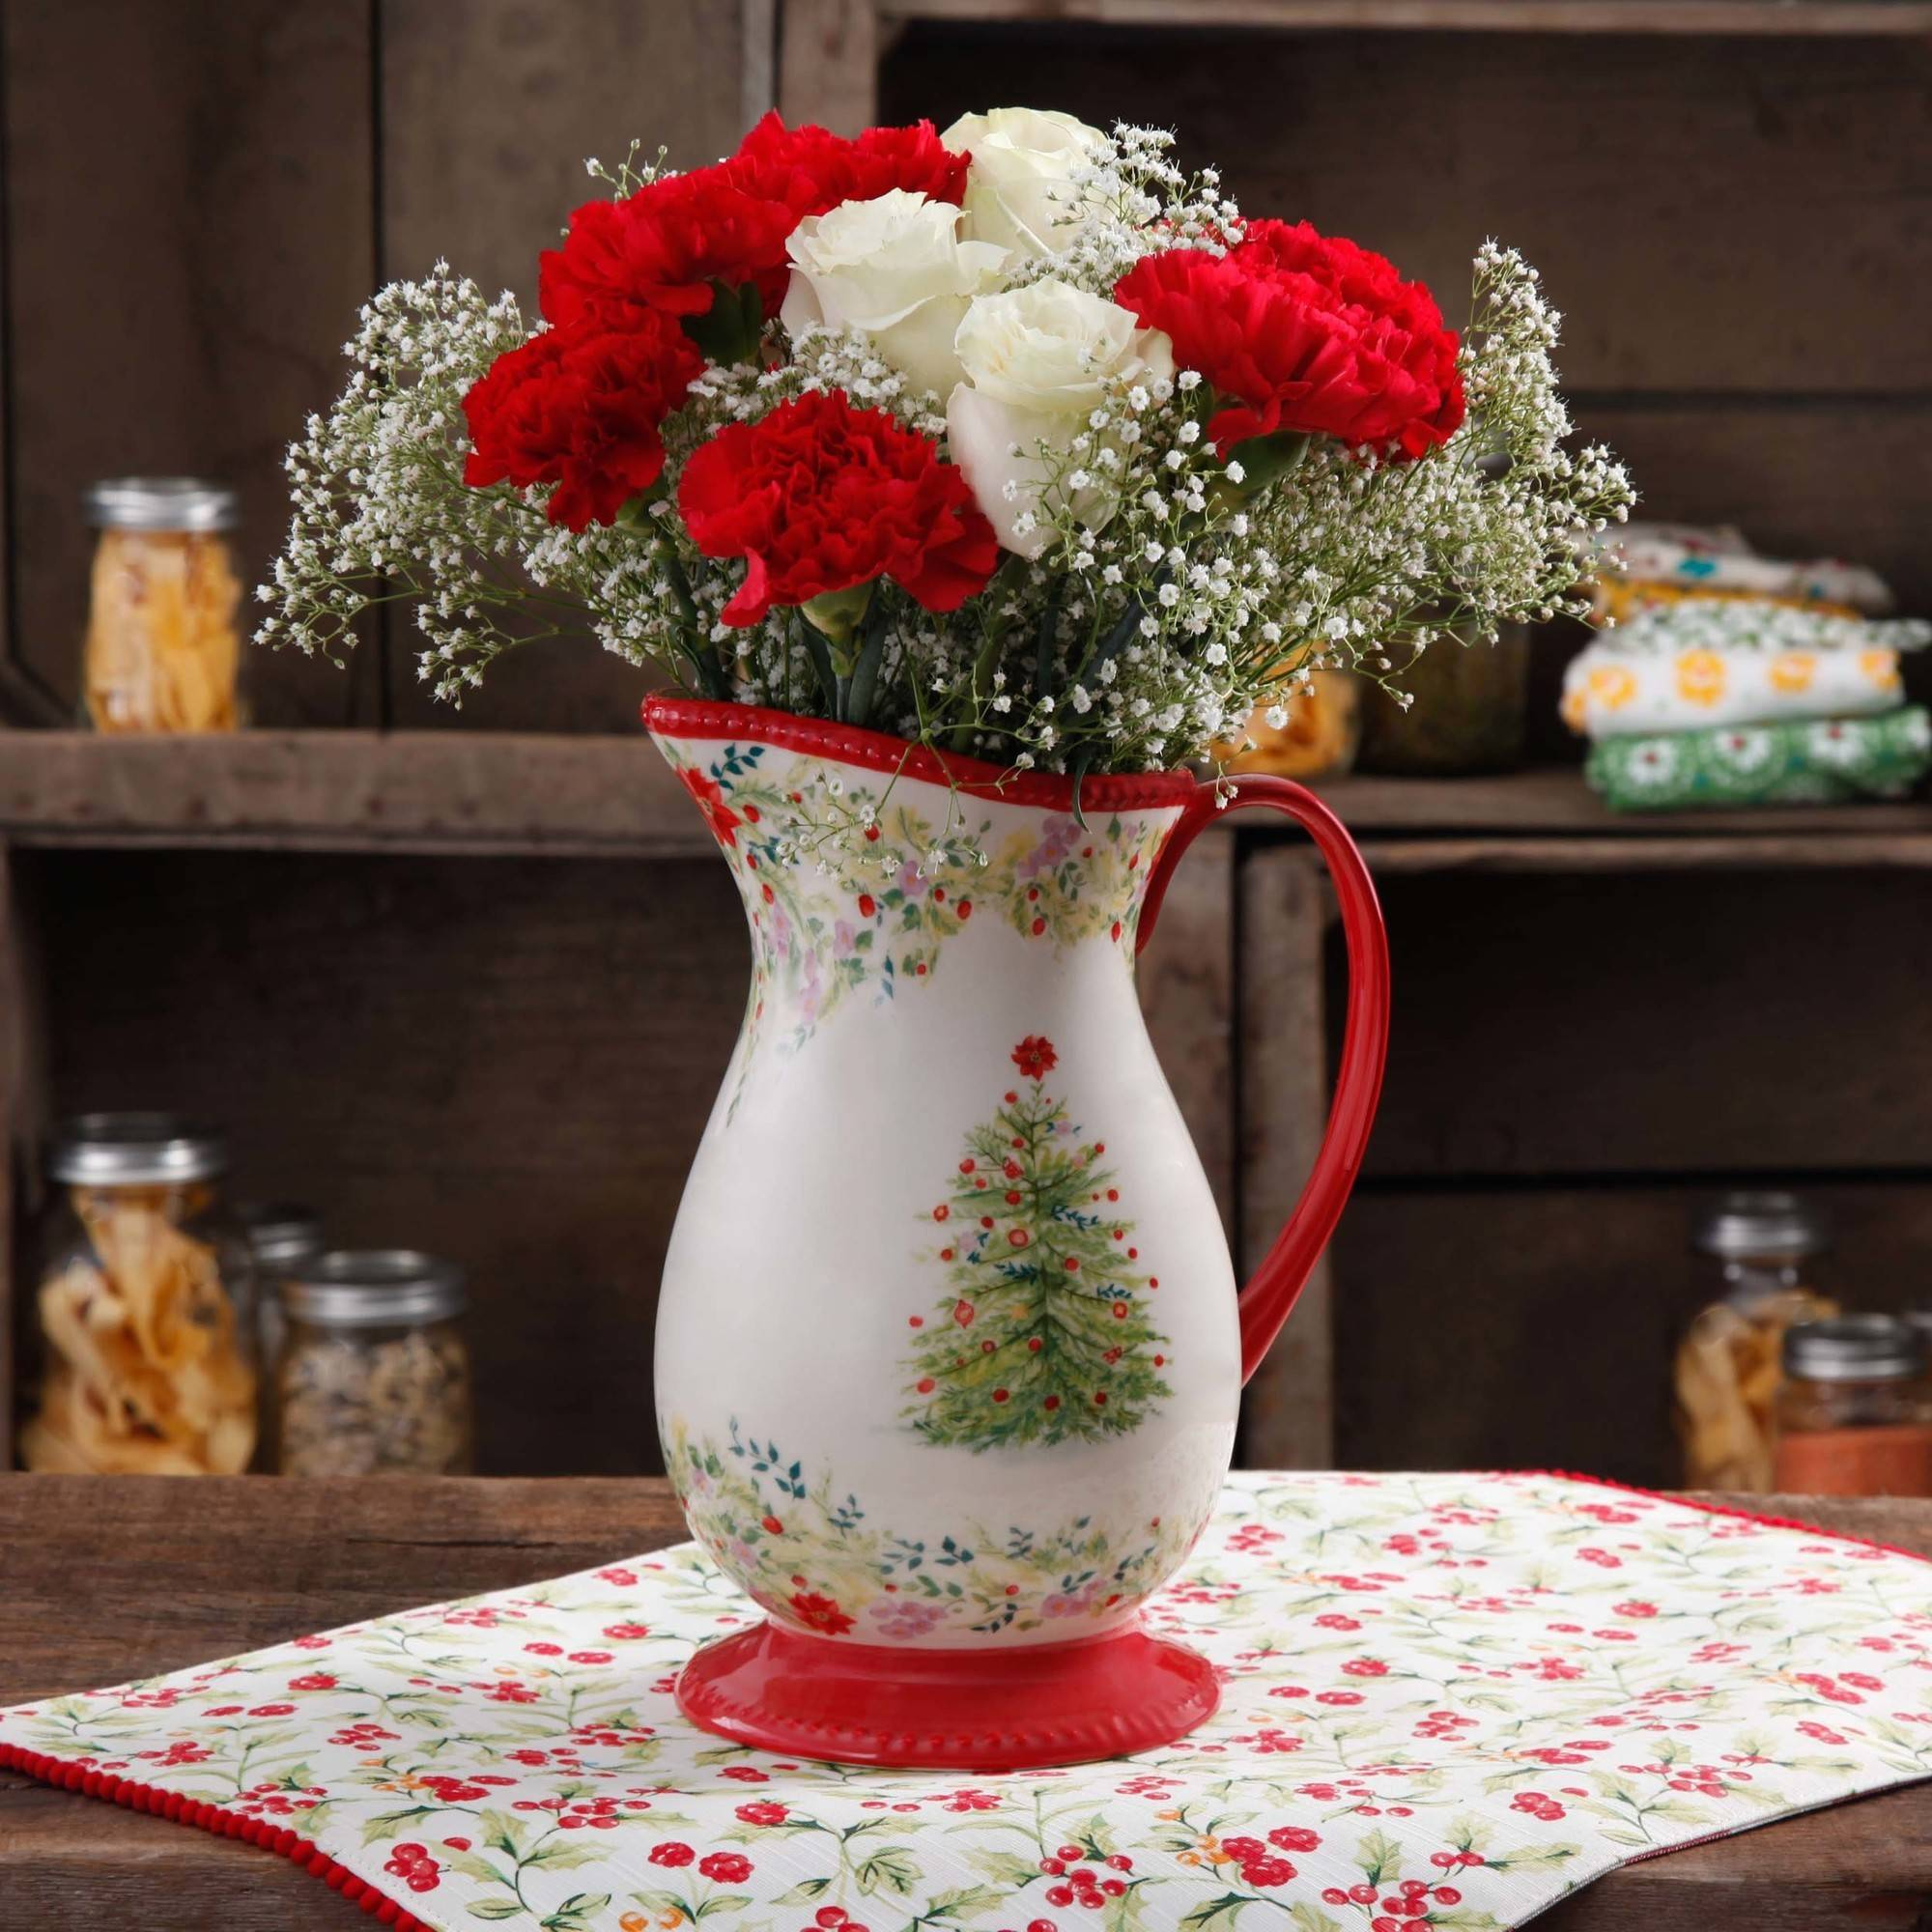 The Pioneer Woman Holiday Cheer Pitcher, 2 qt